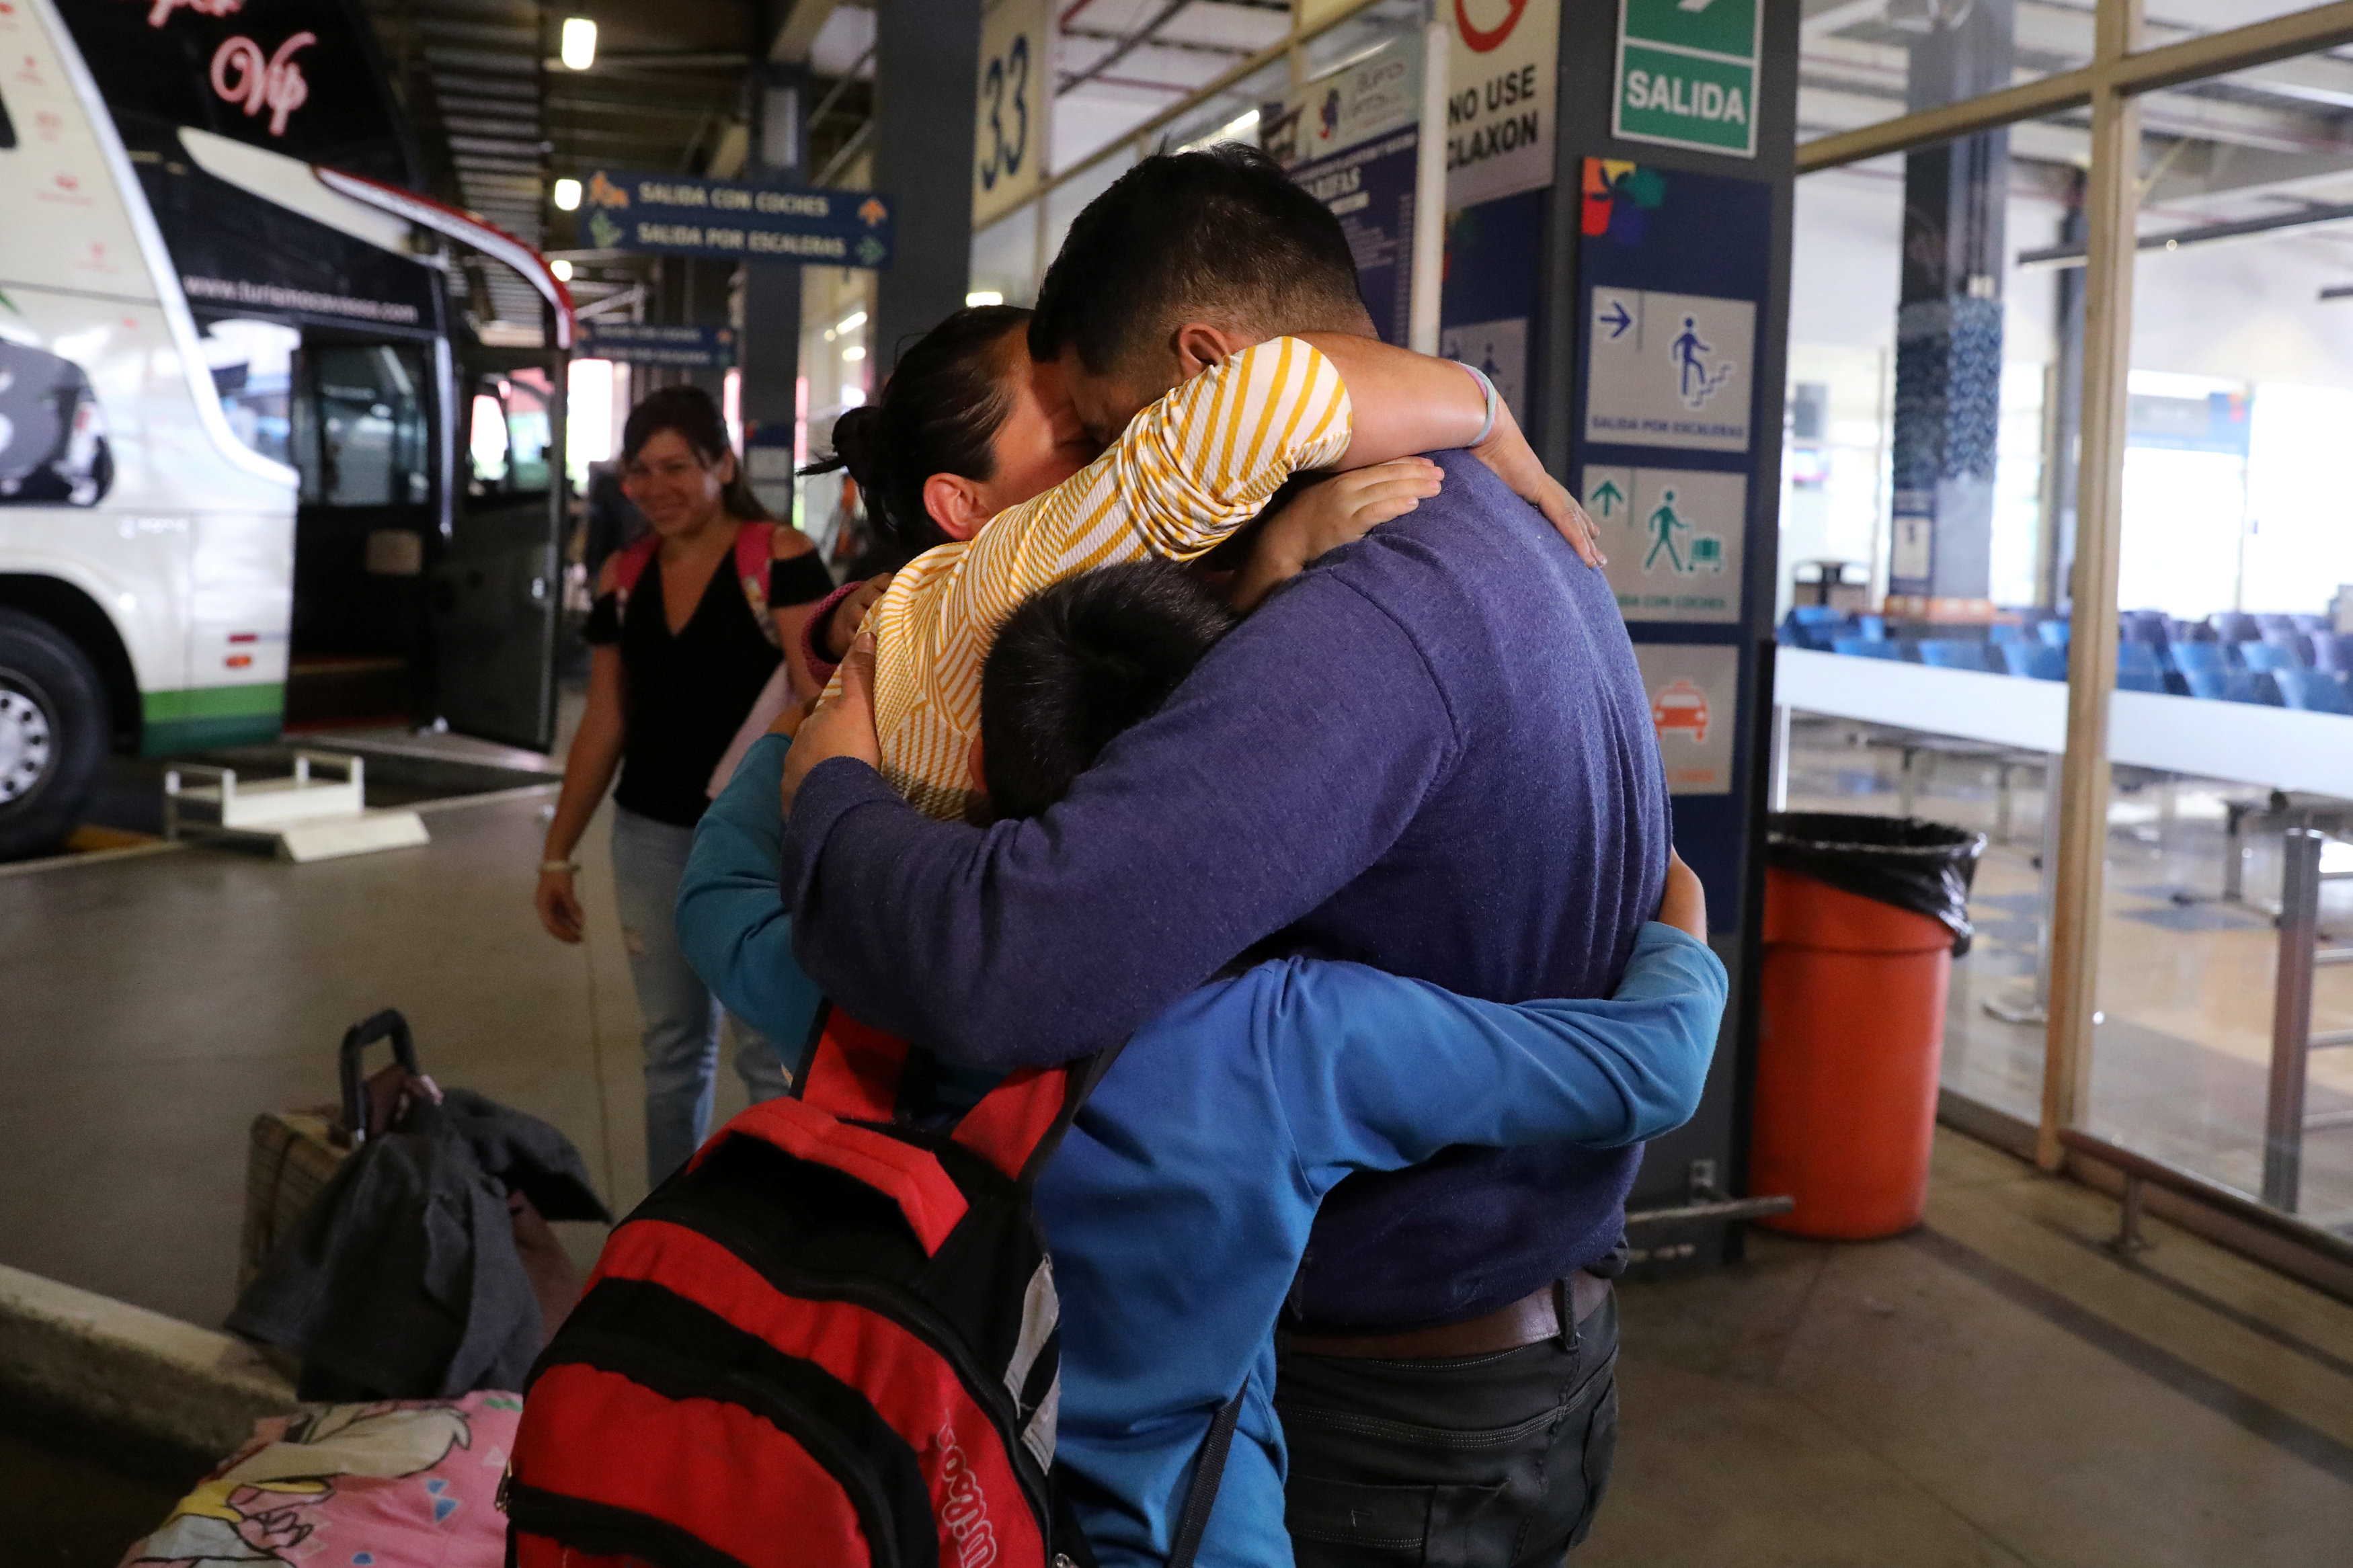 Venezuelan migrant Plaza Pernia family hug as they arrive from the northern city of Tumbes, border with Ecuador, to the bus terminal in Lima, Peru August 22, 2018. REUTERS/Guadalupe Pardo